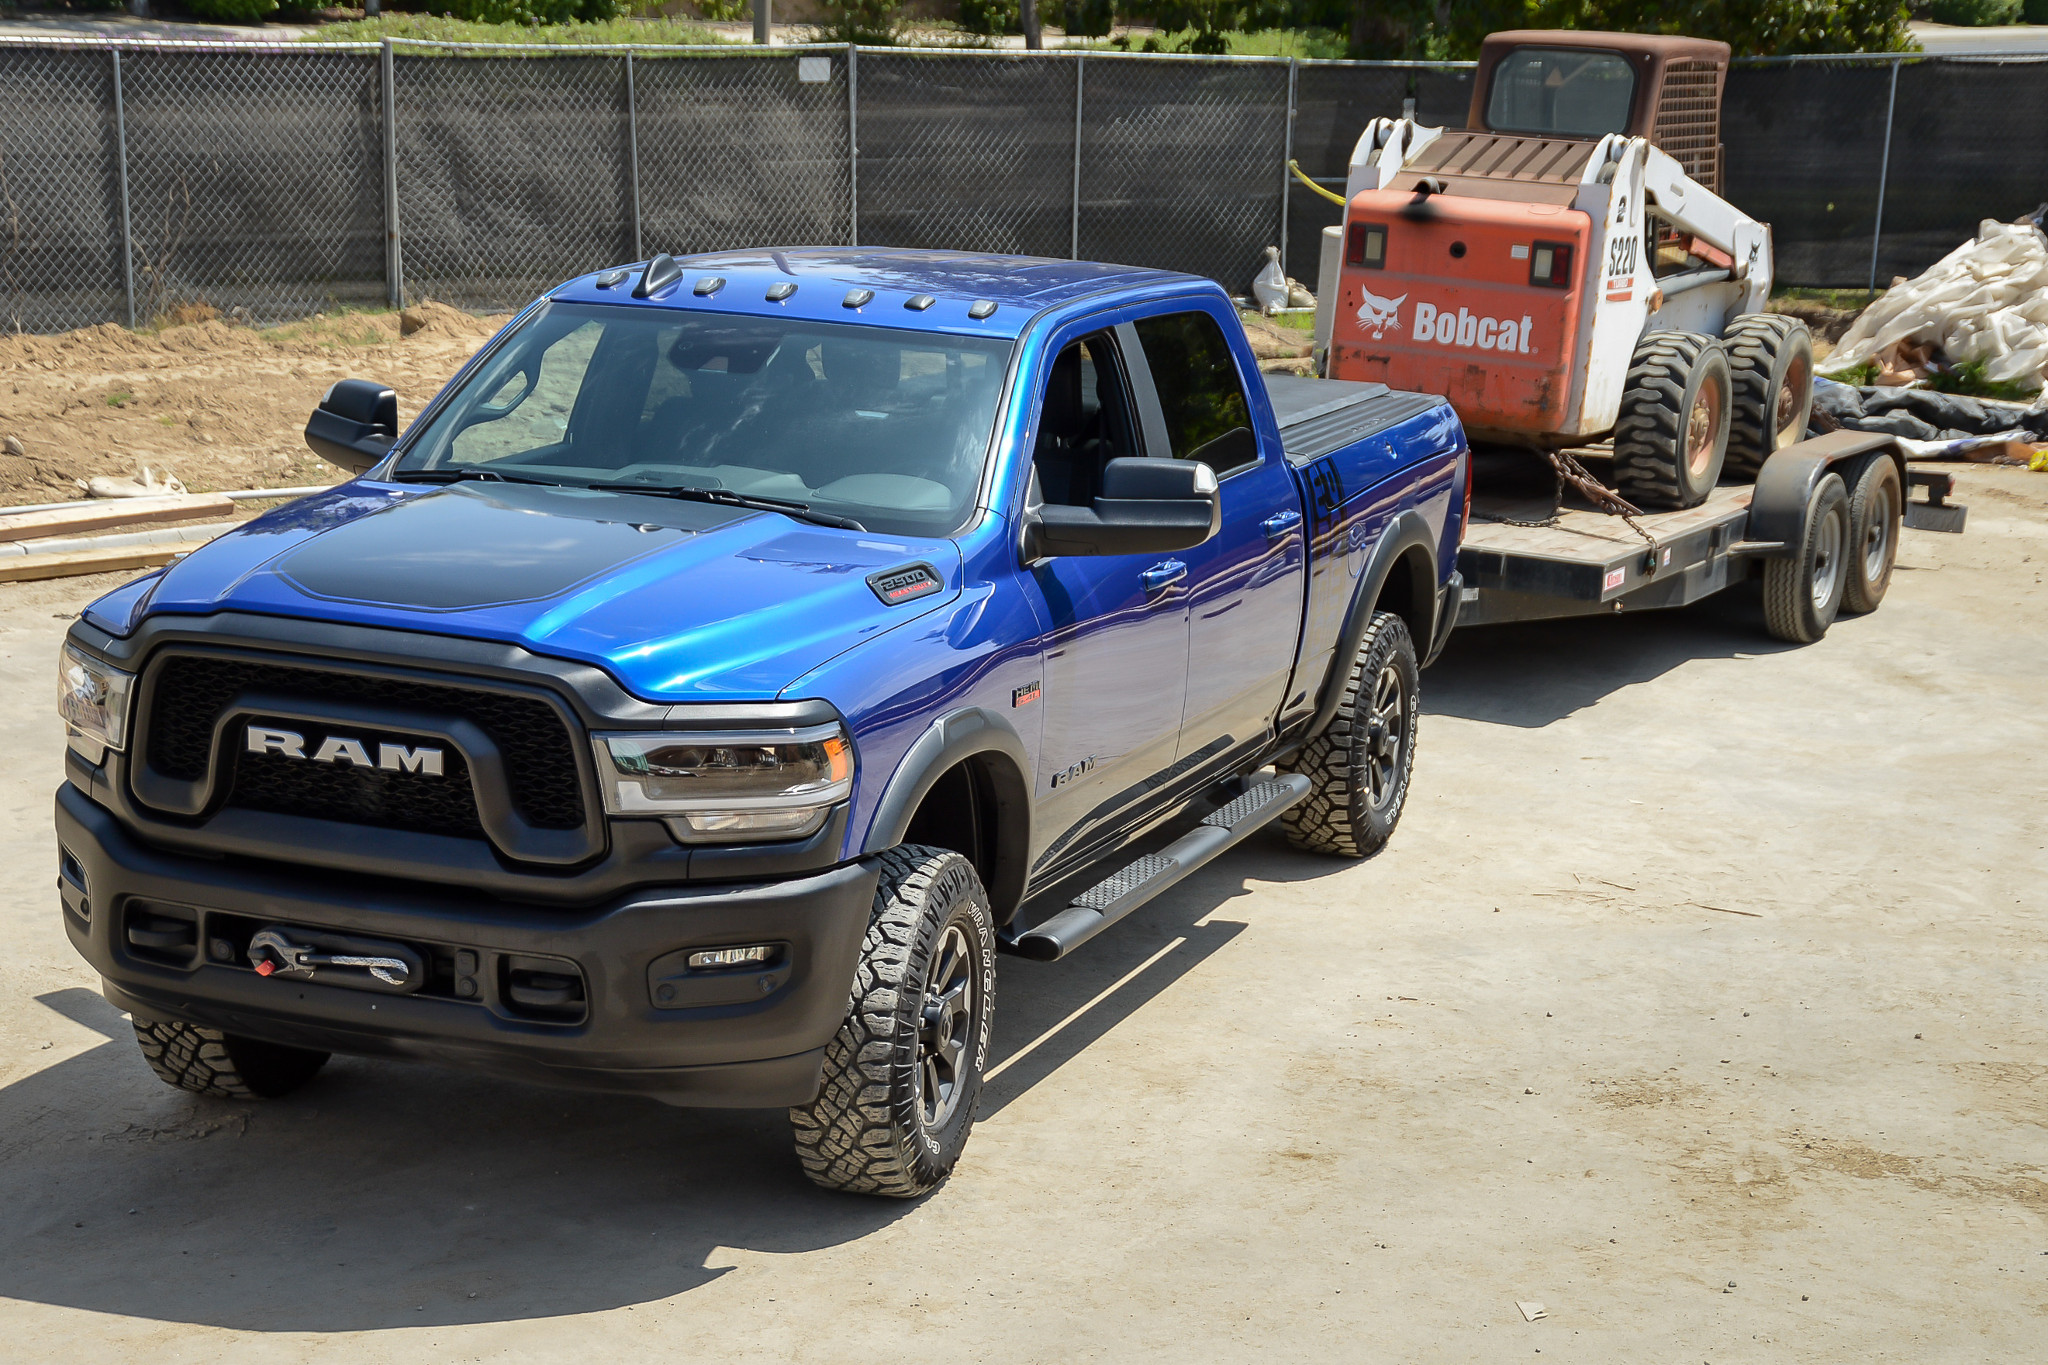 ram-power-wagon-2019-01-angle--blue--exterior--front--towing.jpg